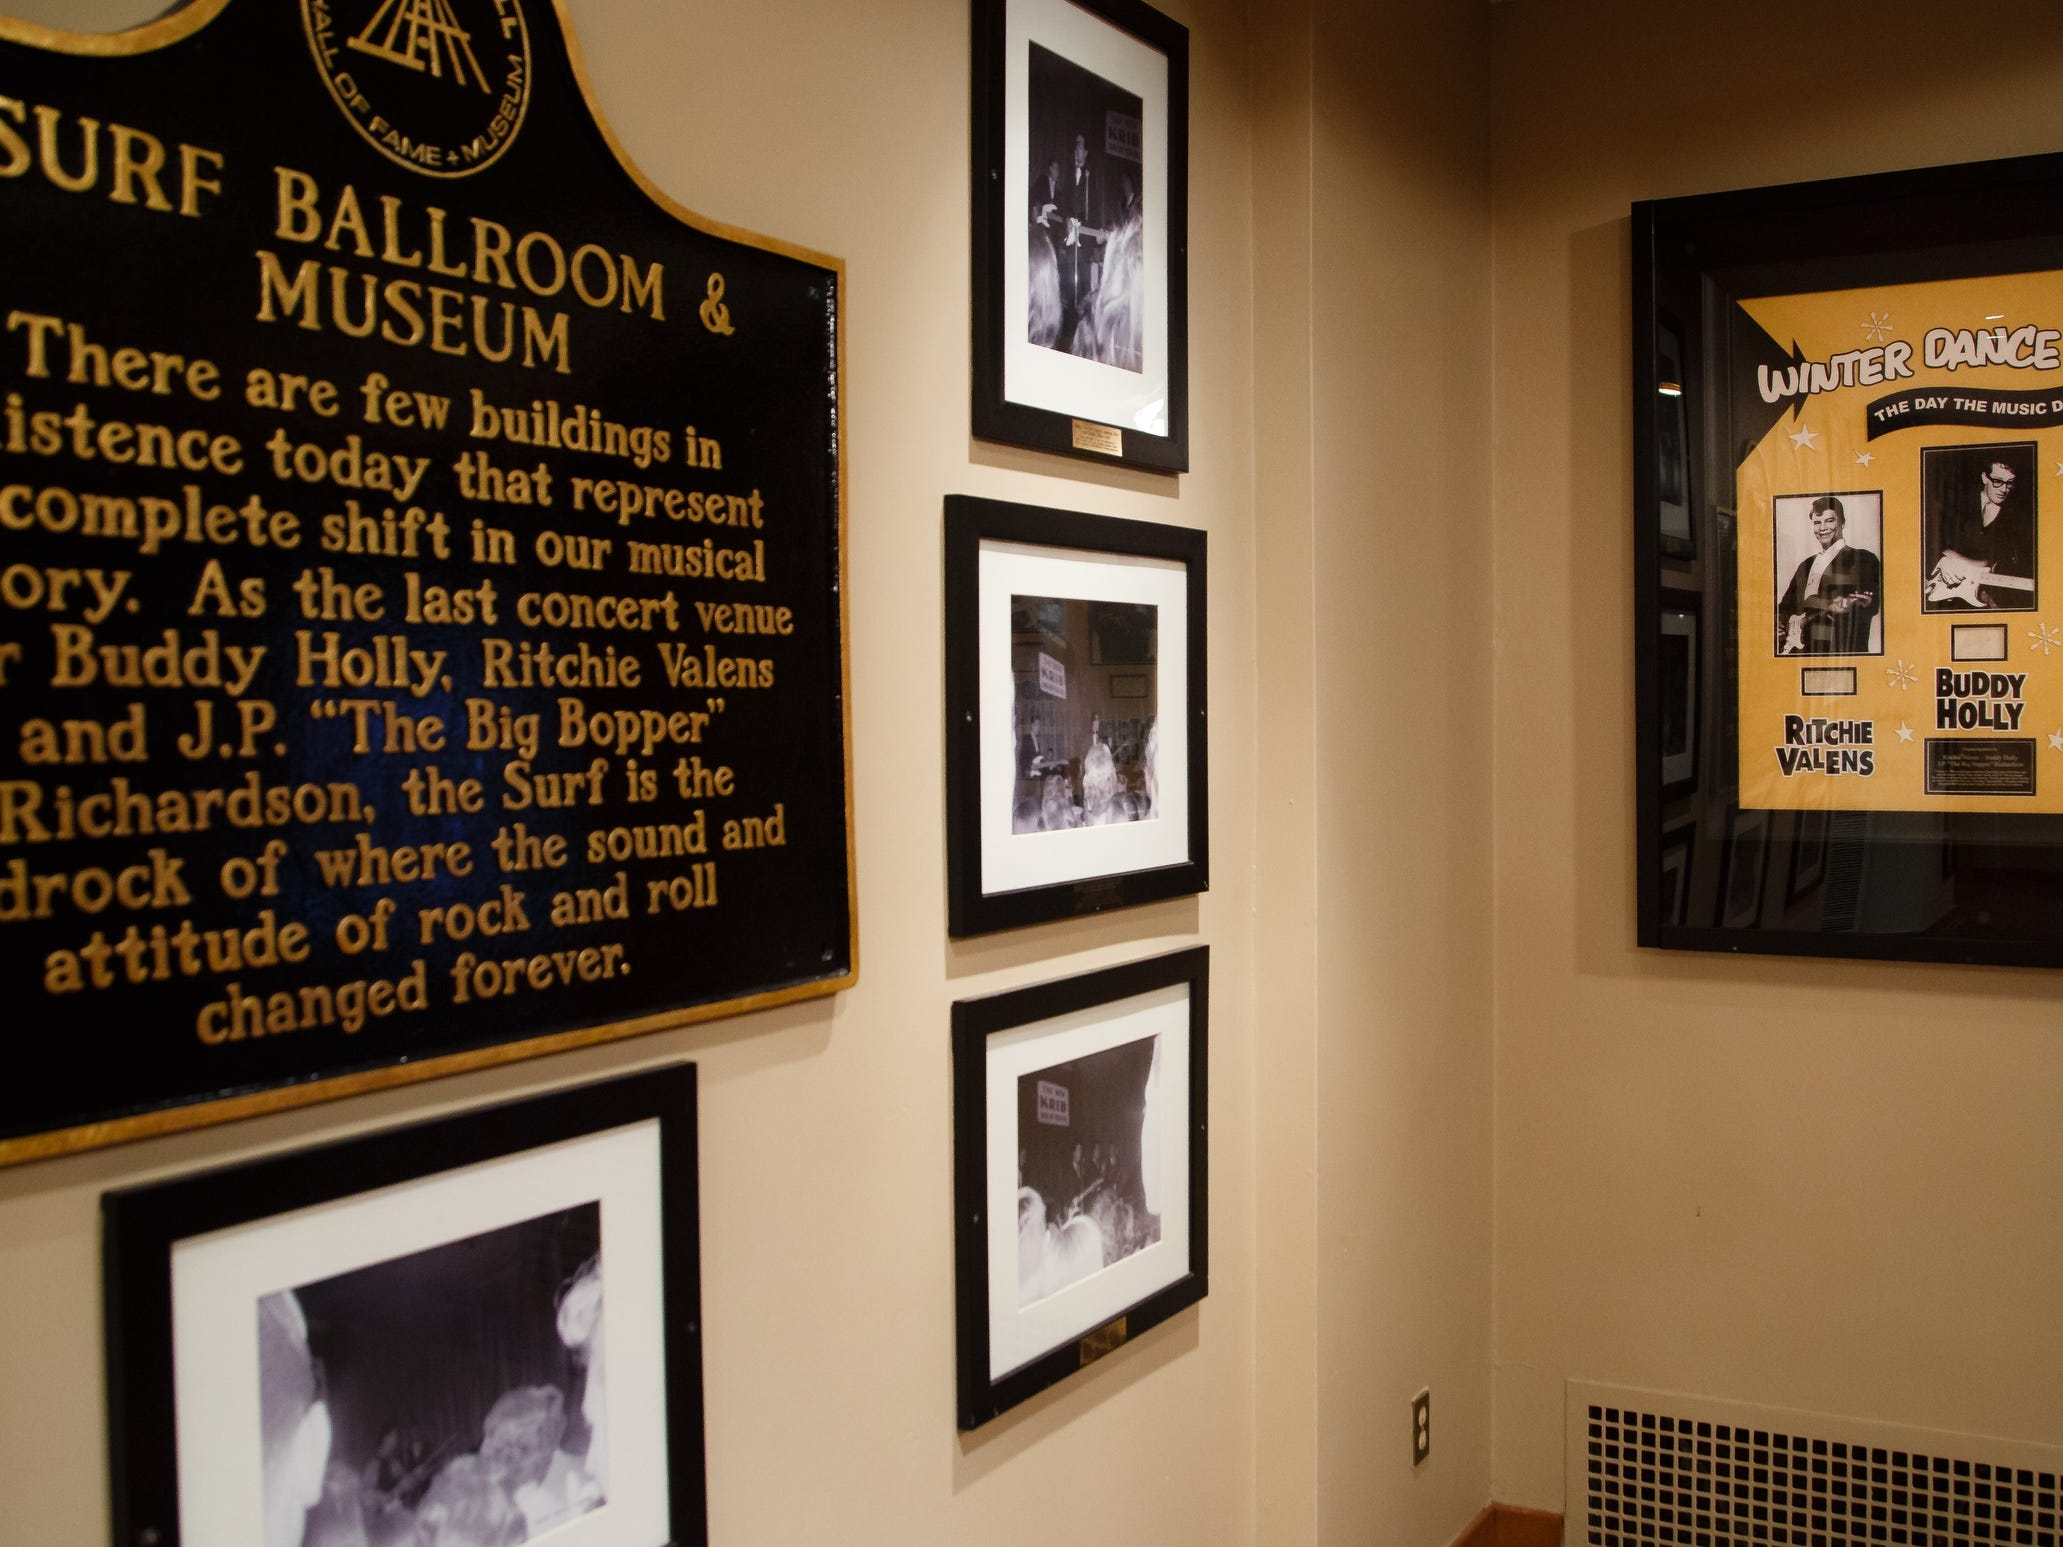 "A plaque from the Rock and Roll Hall of Fame hangs surrounded by photos of Buddy Holly, Ritchie Valens andJ.P. ""the Big Bopper"" Richardson taken by spectators in the audience during the Winter Dance Party in 1959 hang in the lobby of the Surf ballroom on Tuesday, Jan. 15, 2019, in Clear Lake."